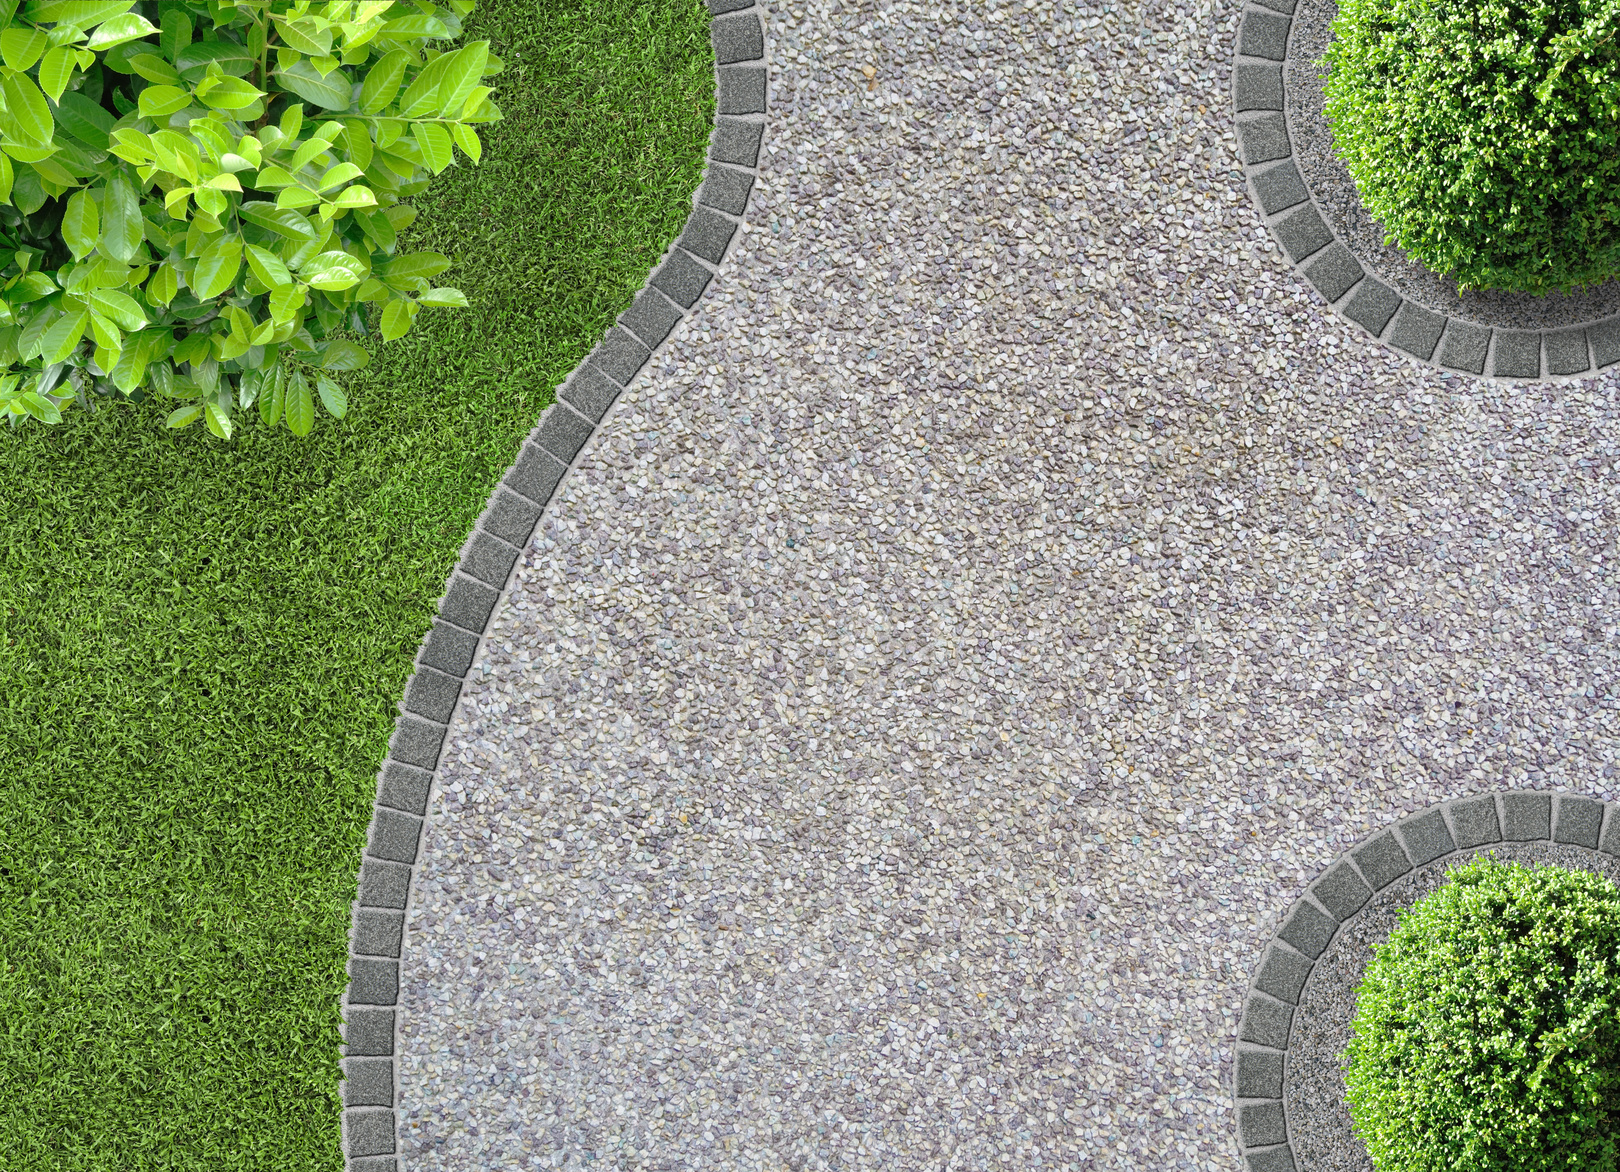 How to find the best Outdoor paving solutions in the area?